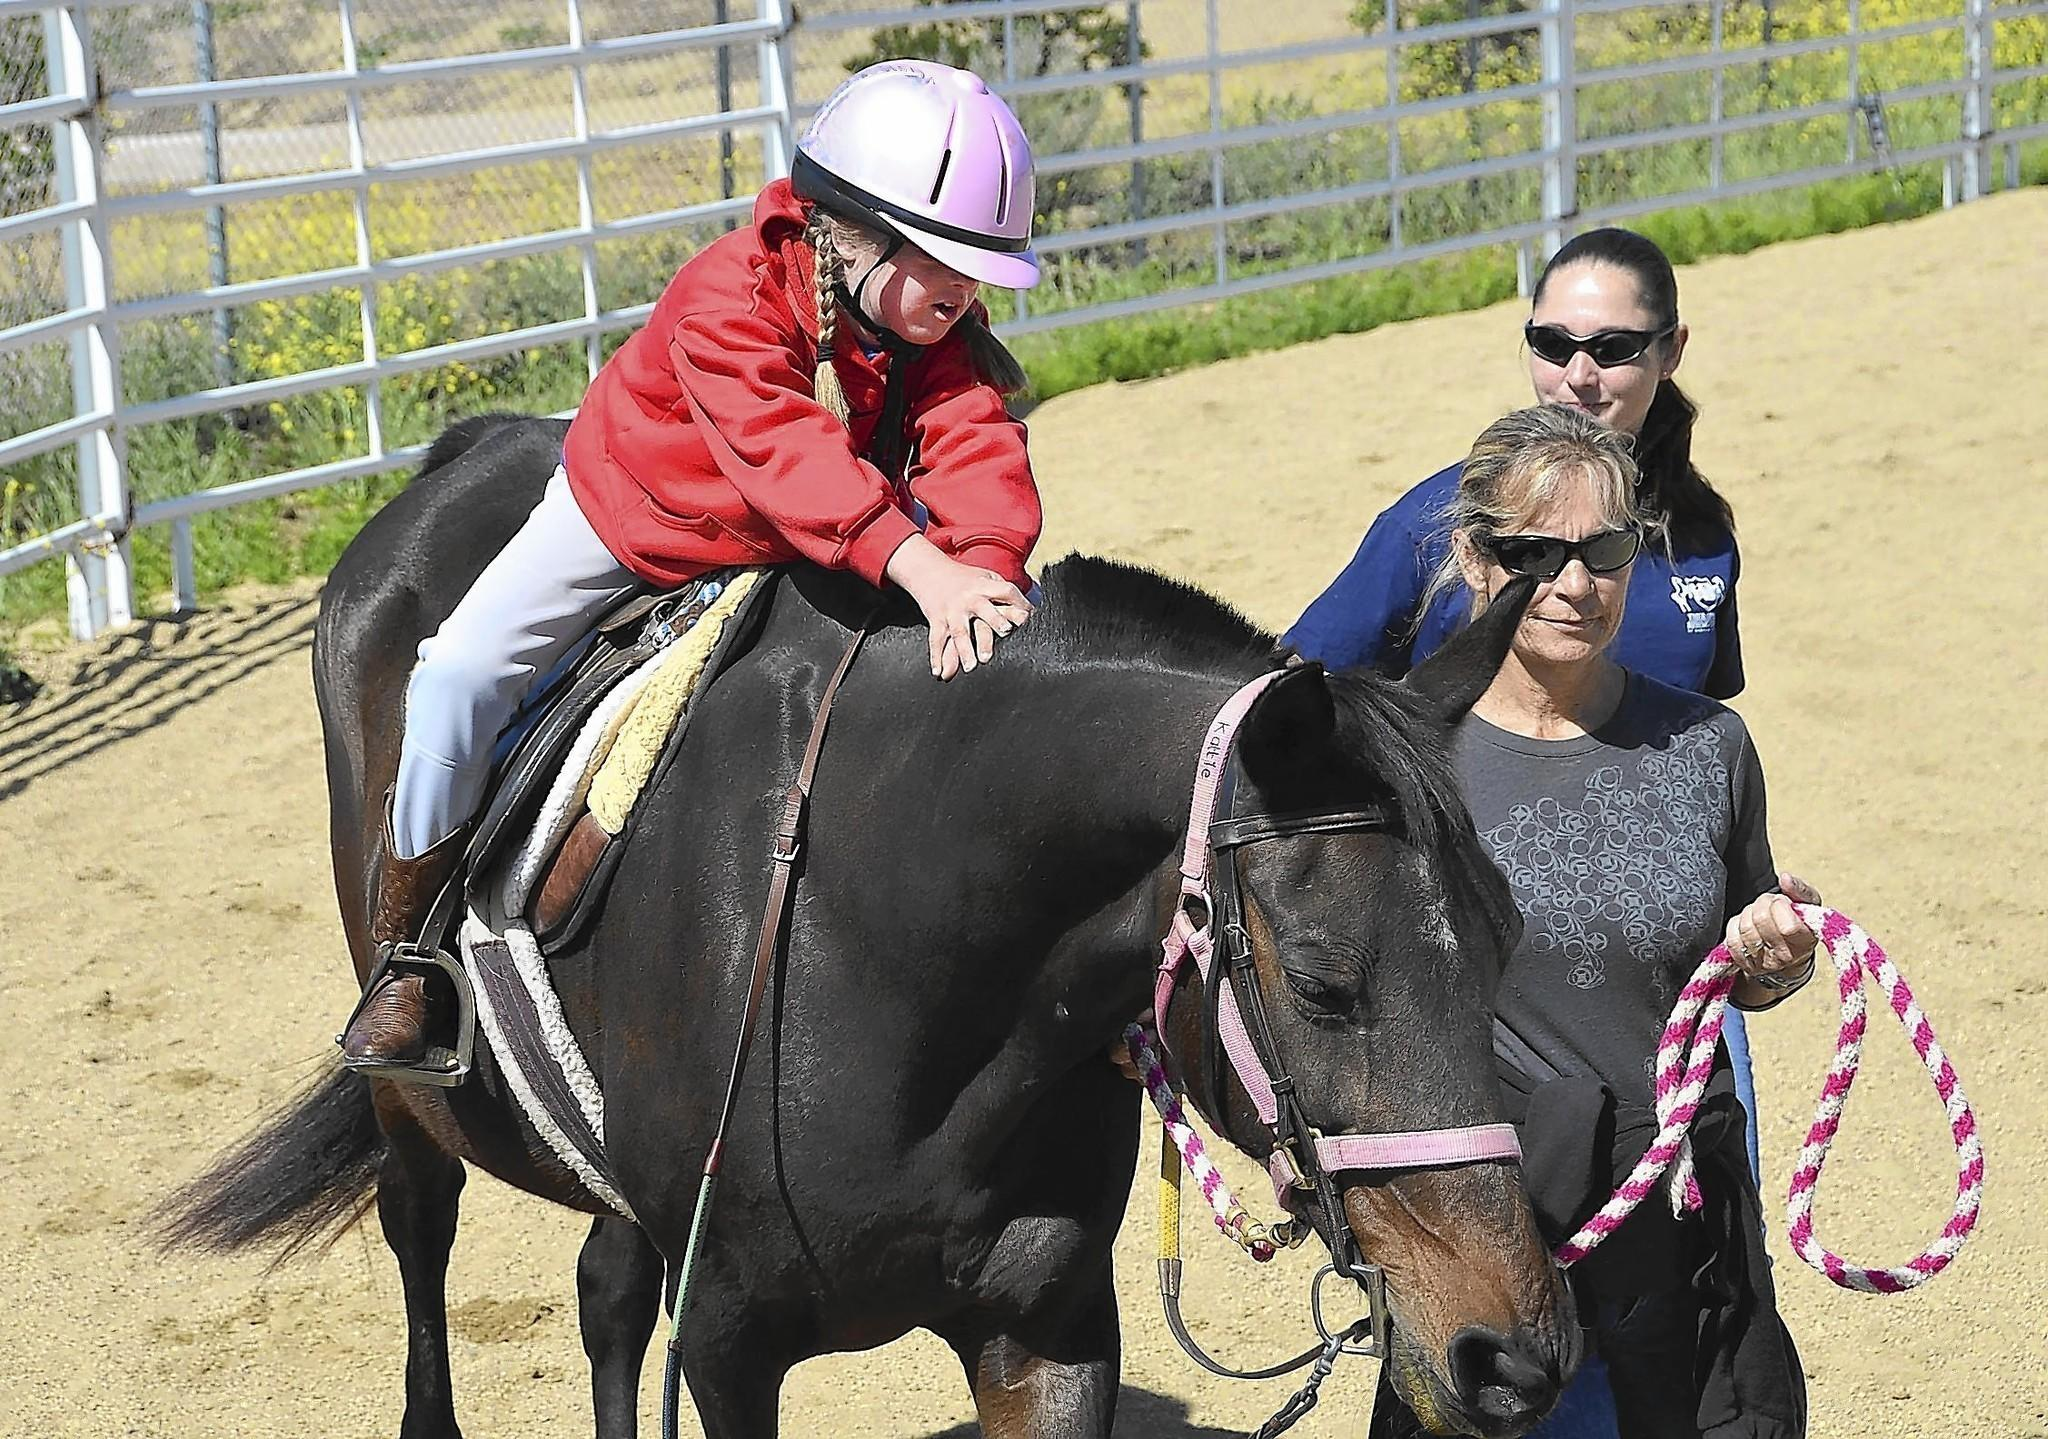 Ten Year Old Julia Kelly Holds Onto Kattie During Her Riding Cl At The